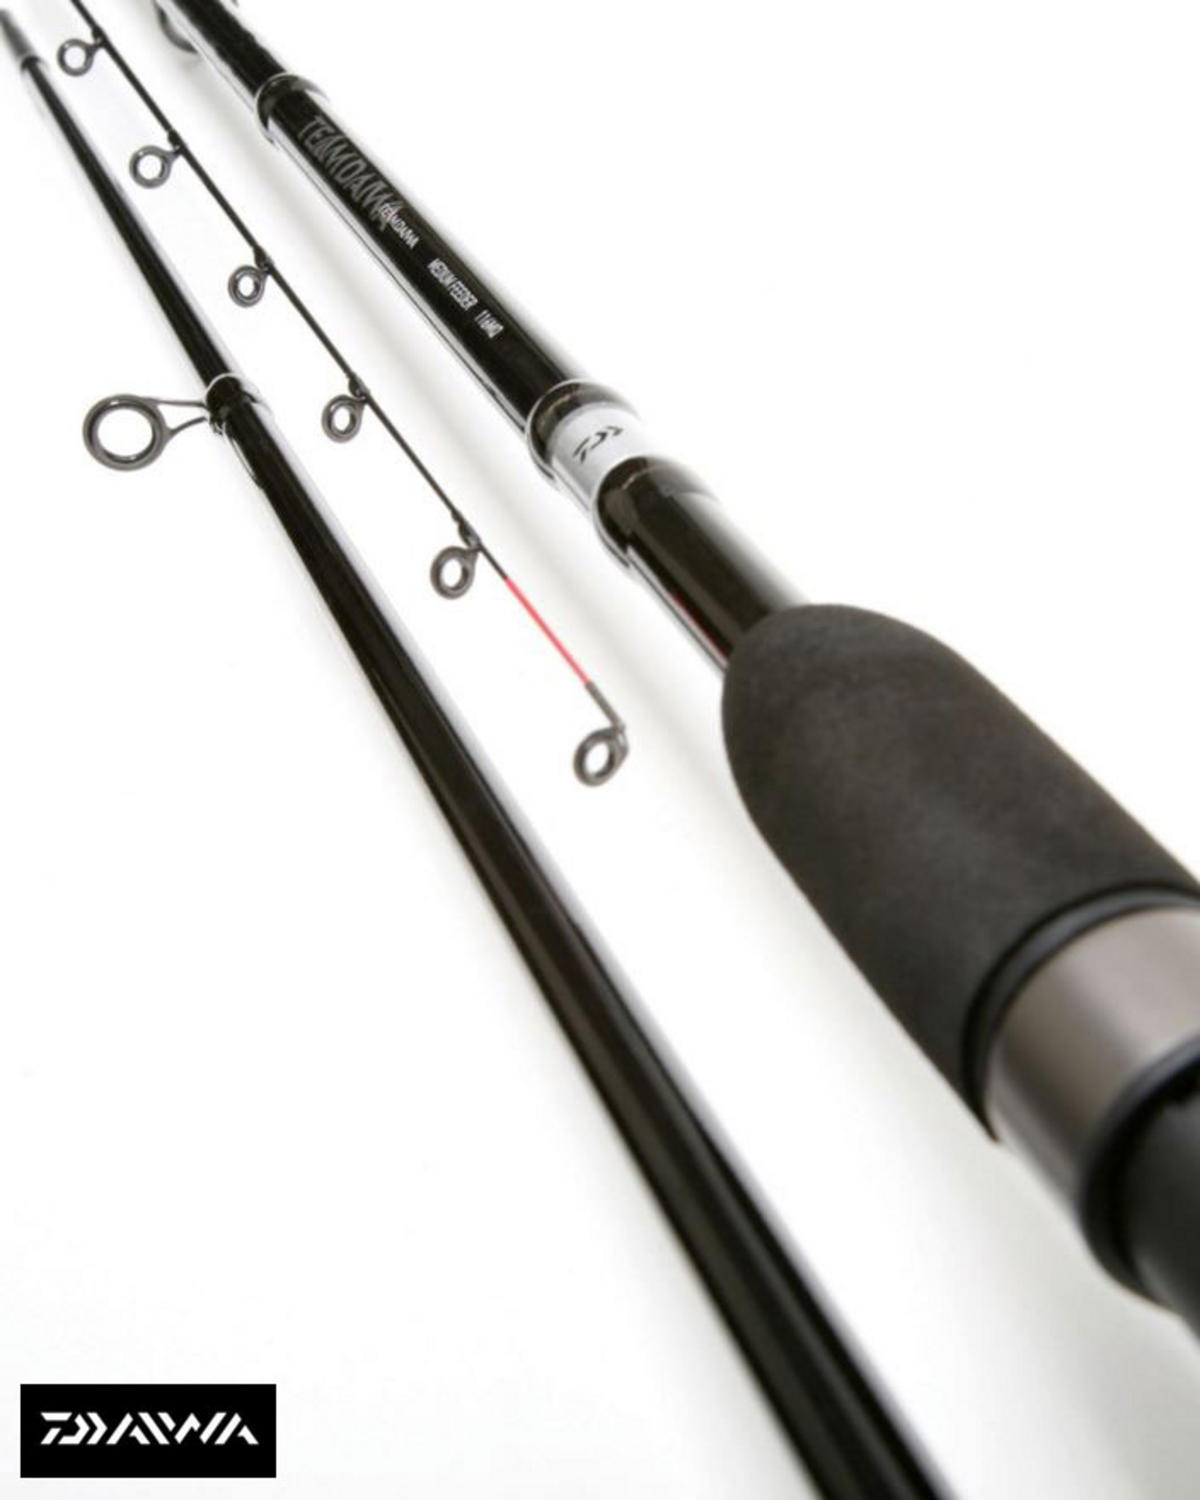 NEW TEAM DAIWA MATCH & FEEDER FISHING RODS ALL SIZES